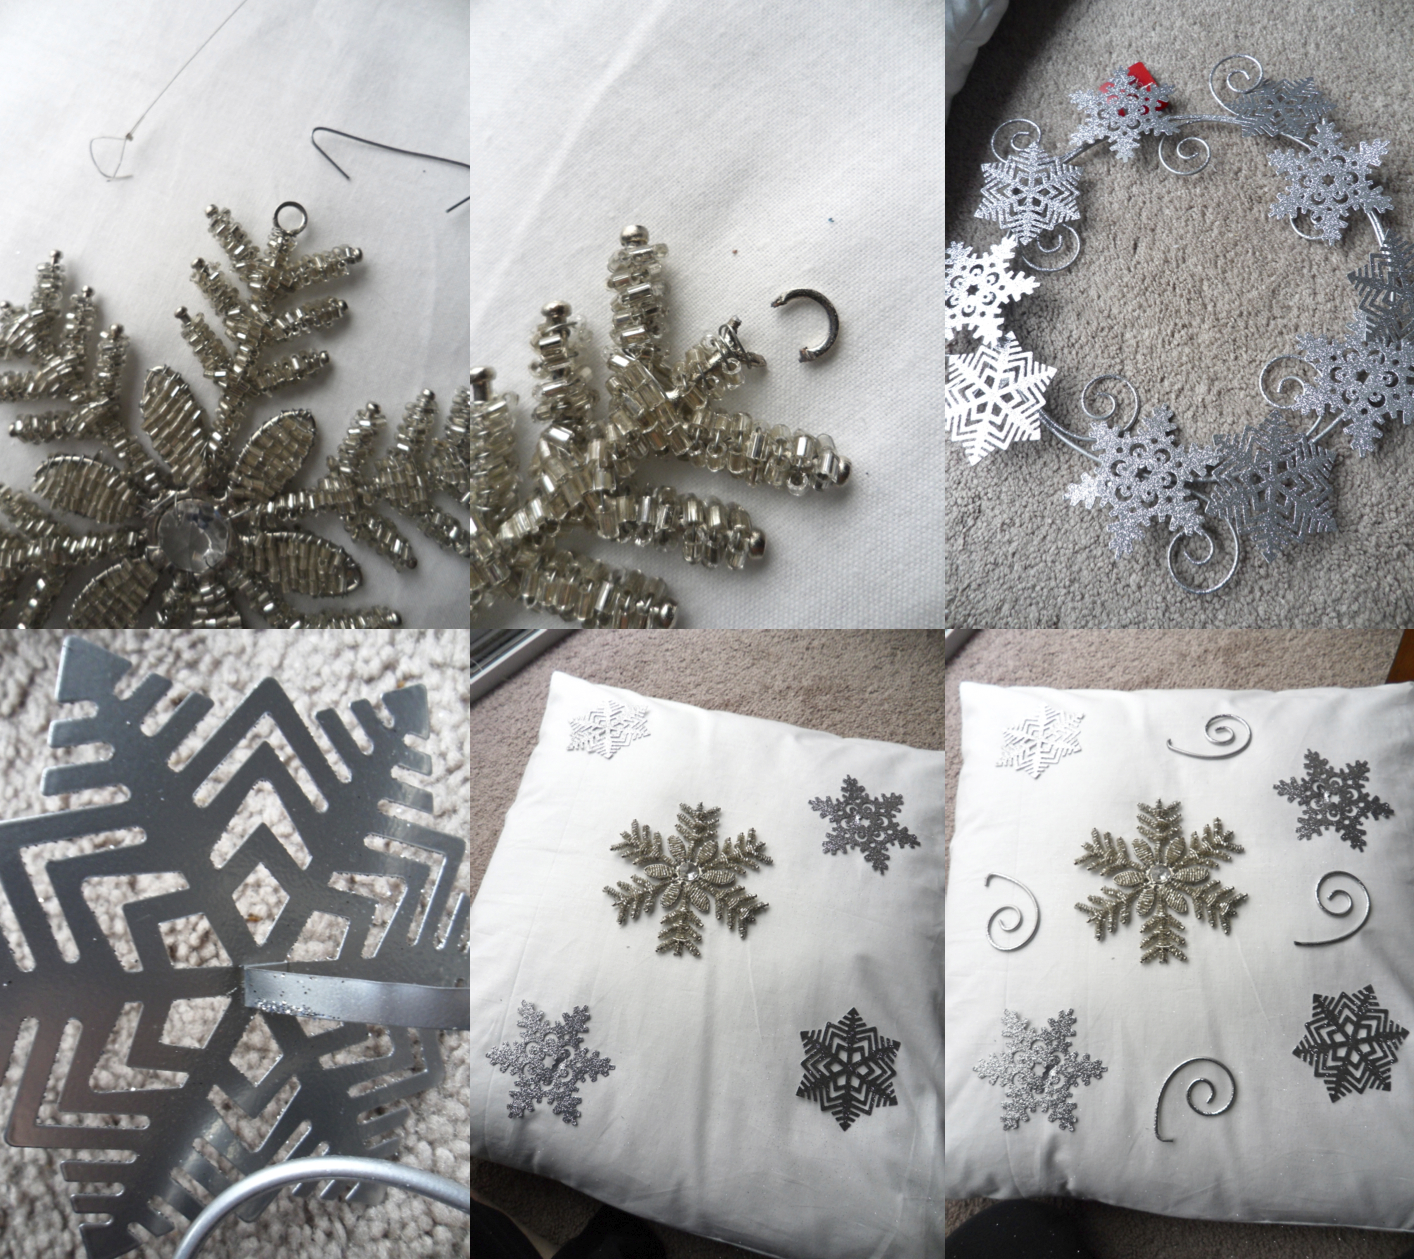 & Embellished Designer Christmas Pillows | pillowsntoast.com